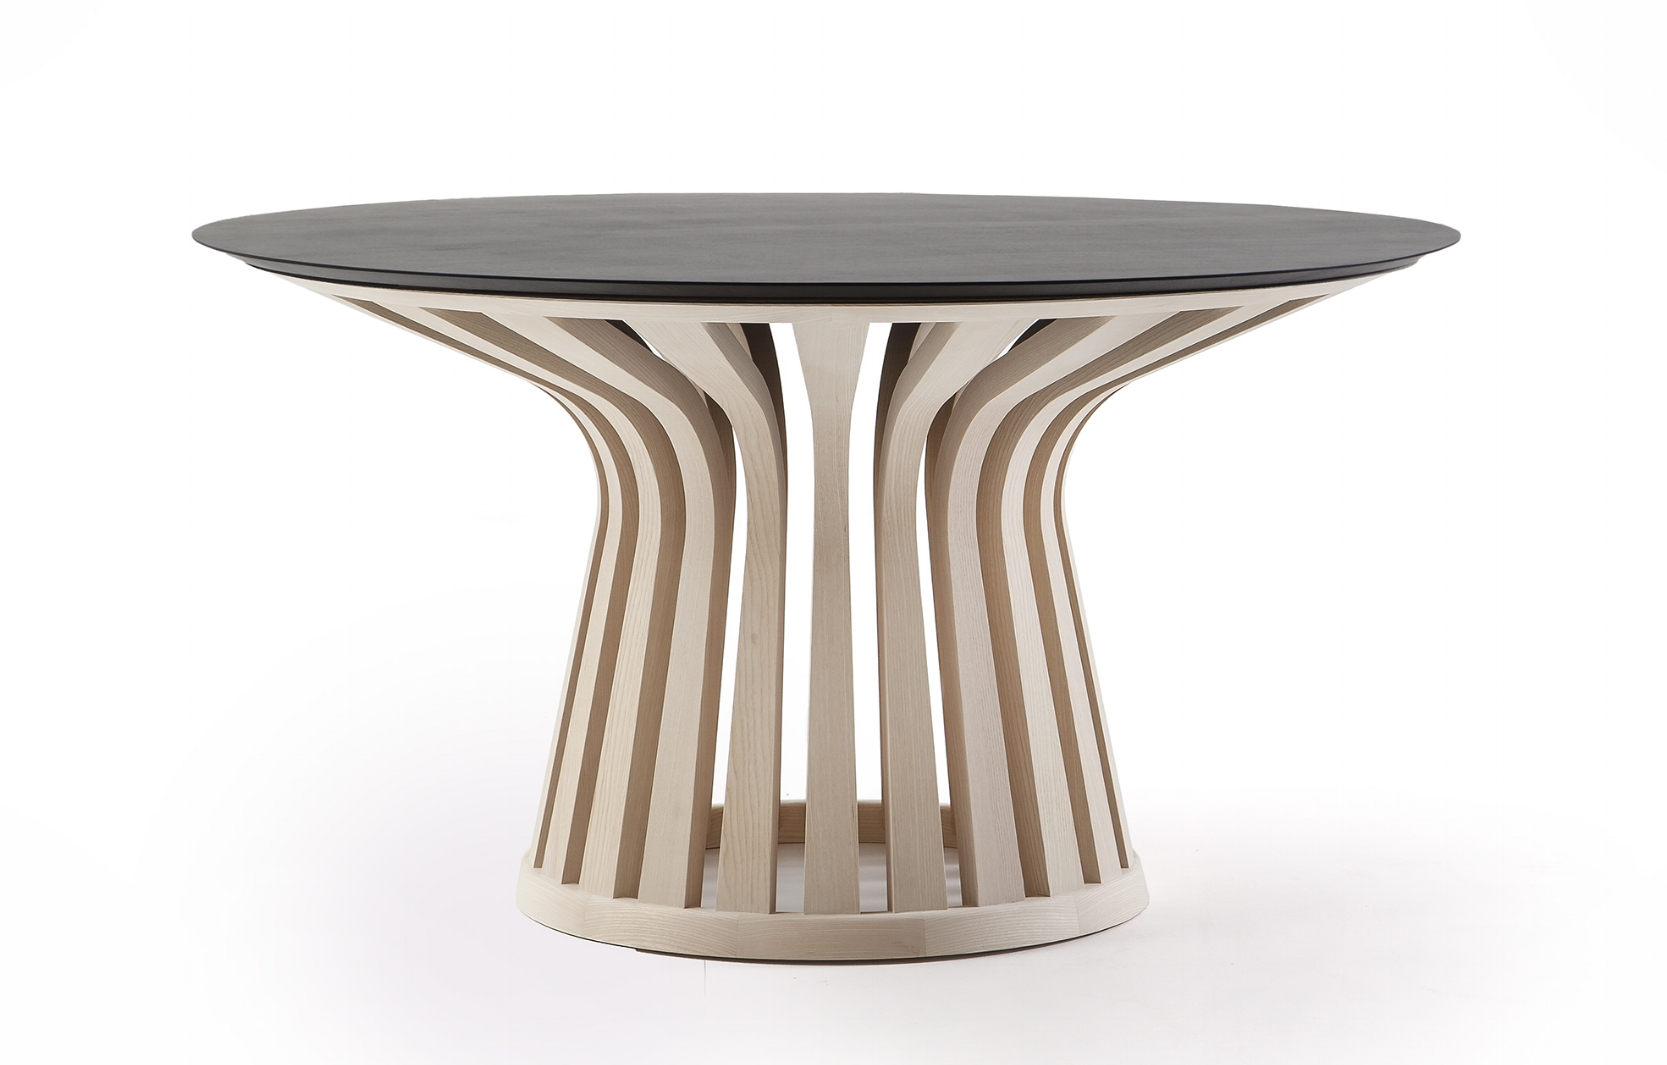 Lebeau Wood table by Patrick Jouin for the Cassina Contemporary collection.